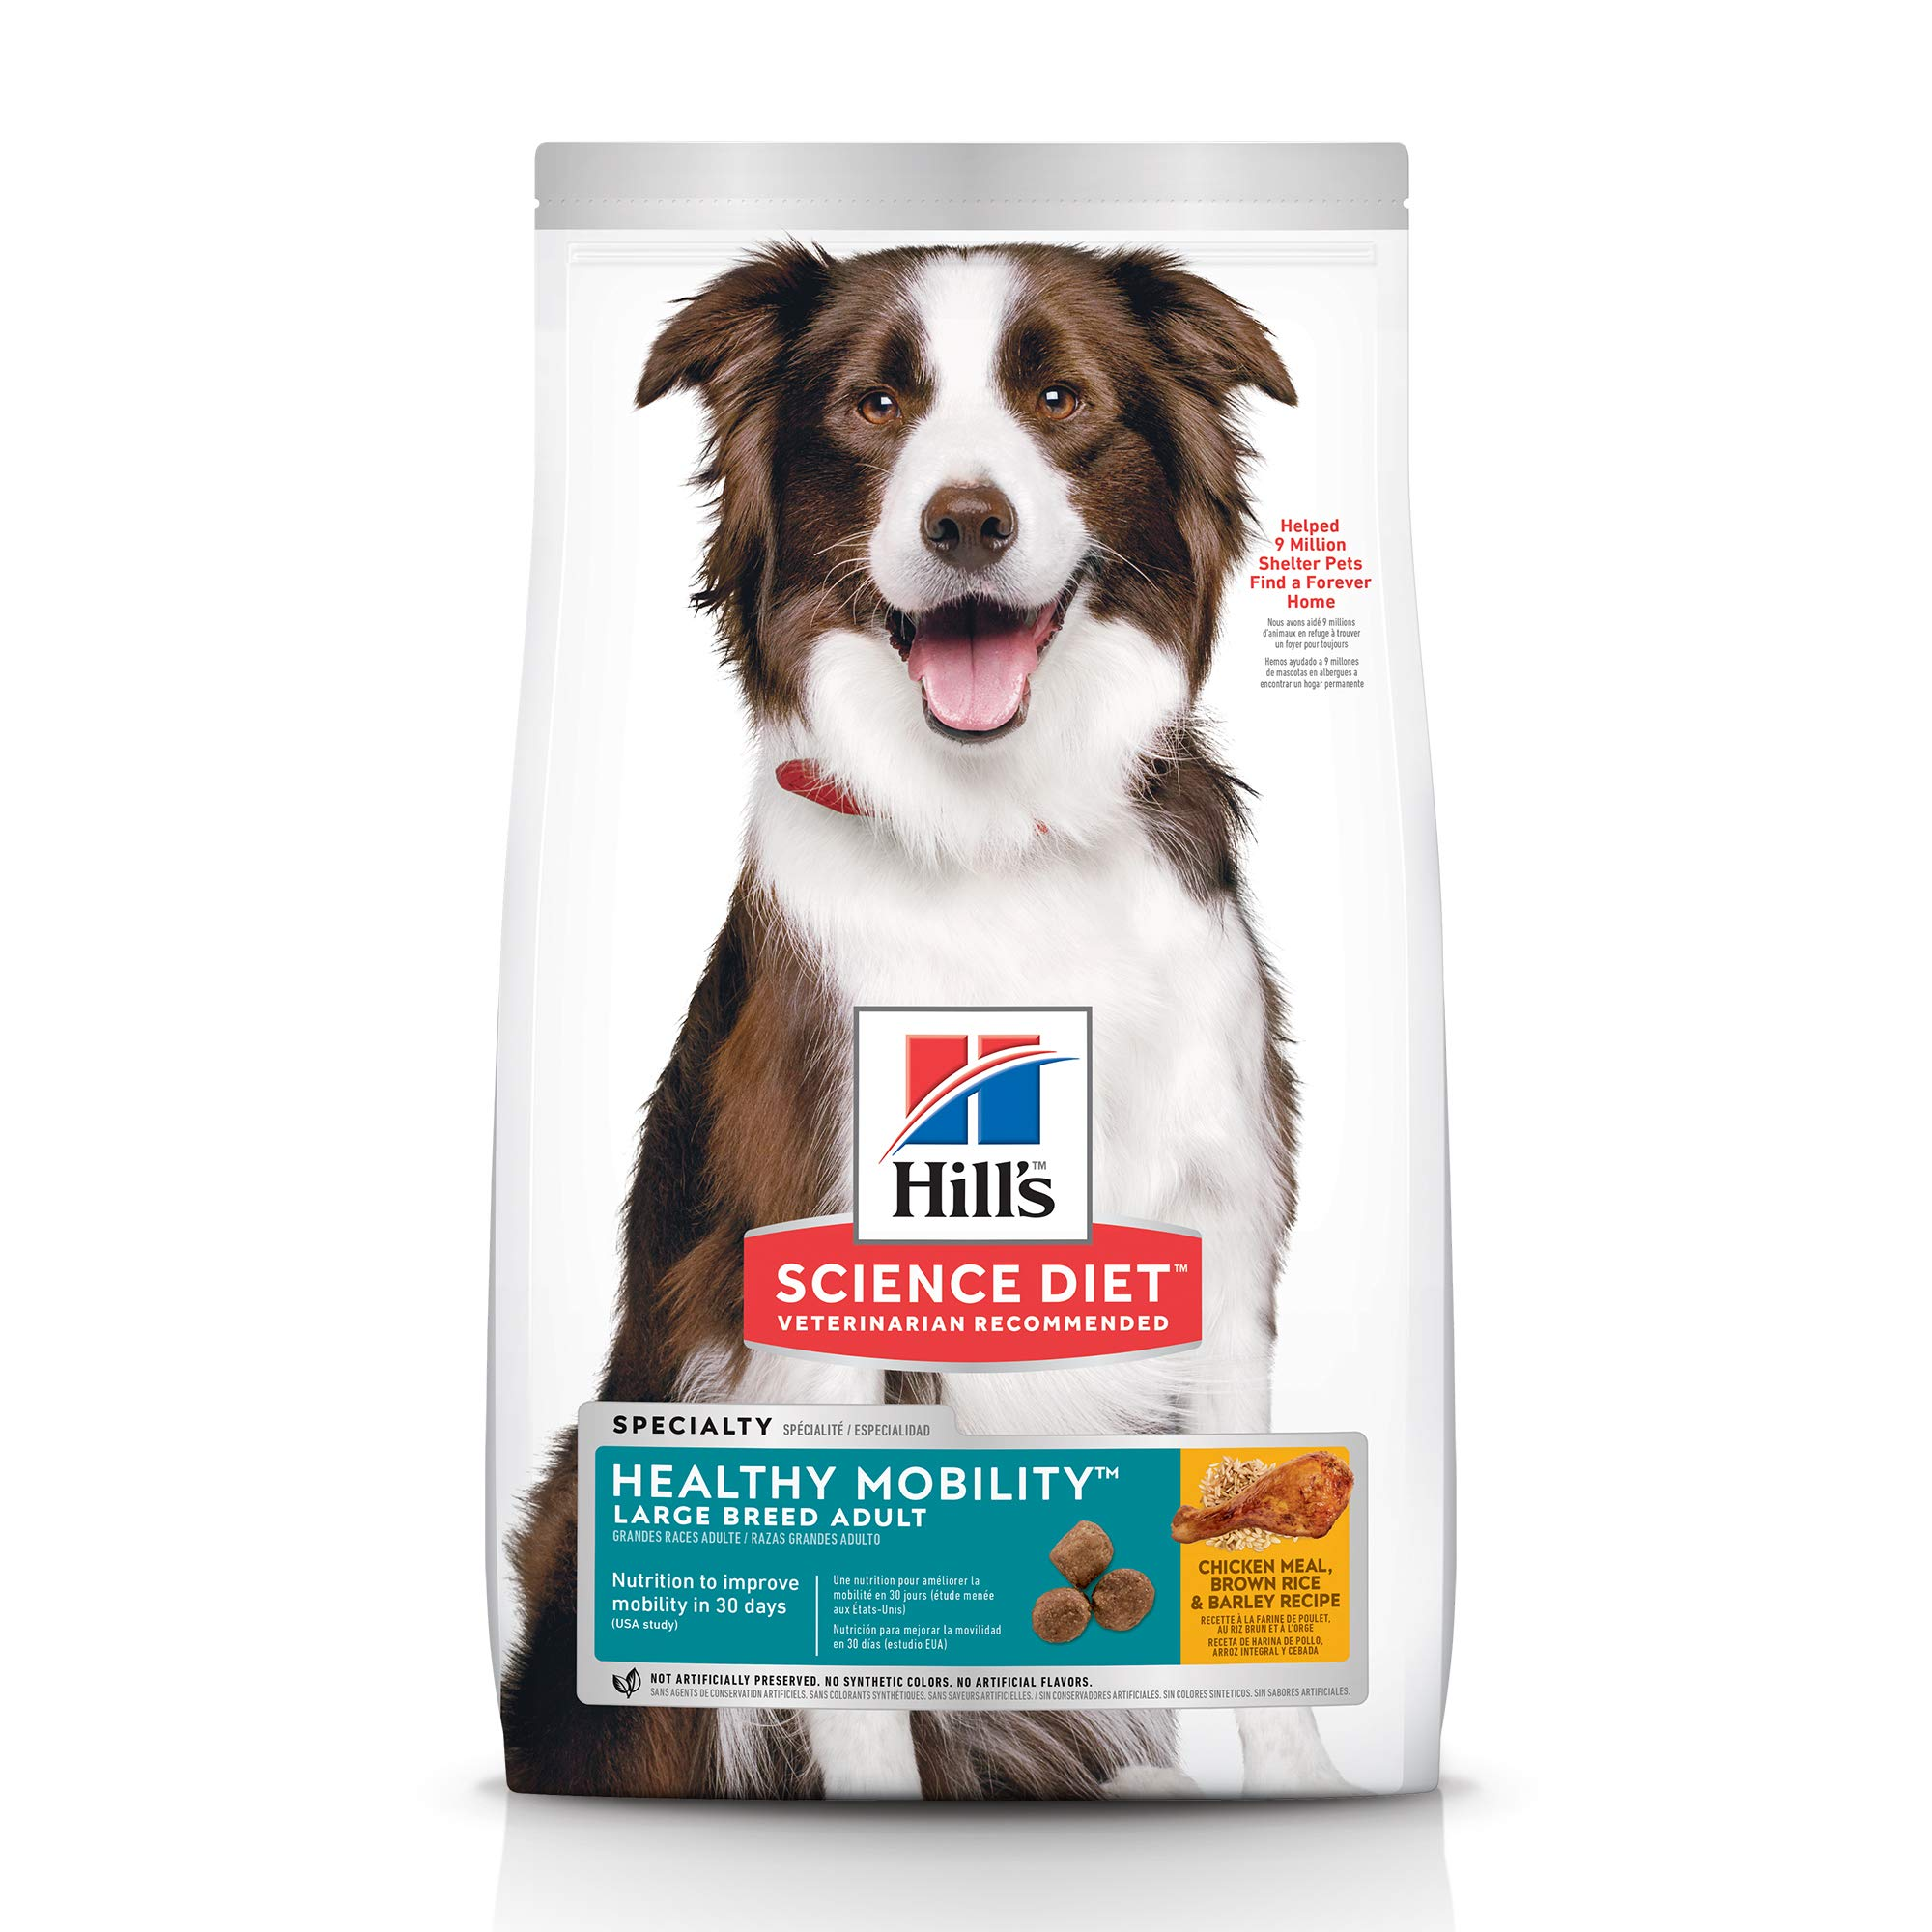 Hill's Science Diet Dry Dog Food, Adult, Large Breed, Healthy Mobility for Joint Health, Chicken Meal, Brown Rice & Barley Recipe, 30 lb Bag by Hill's Science Diet